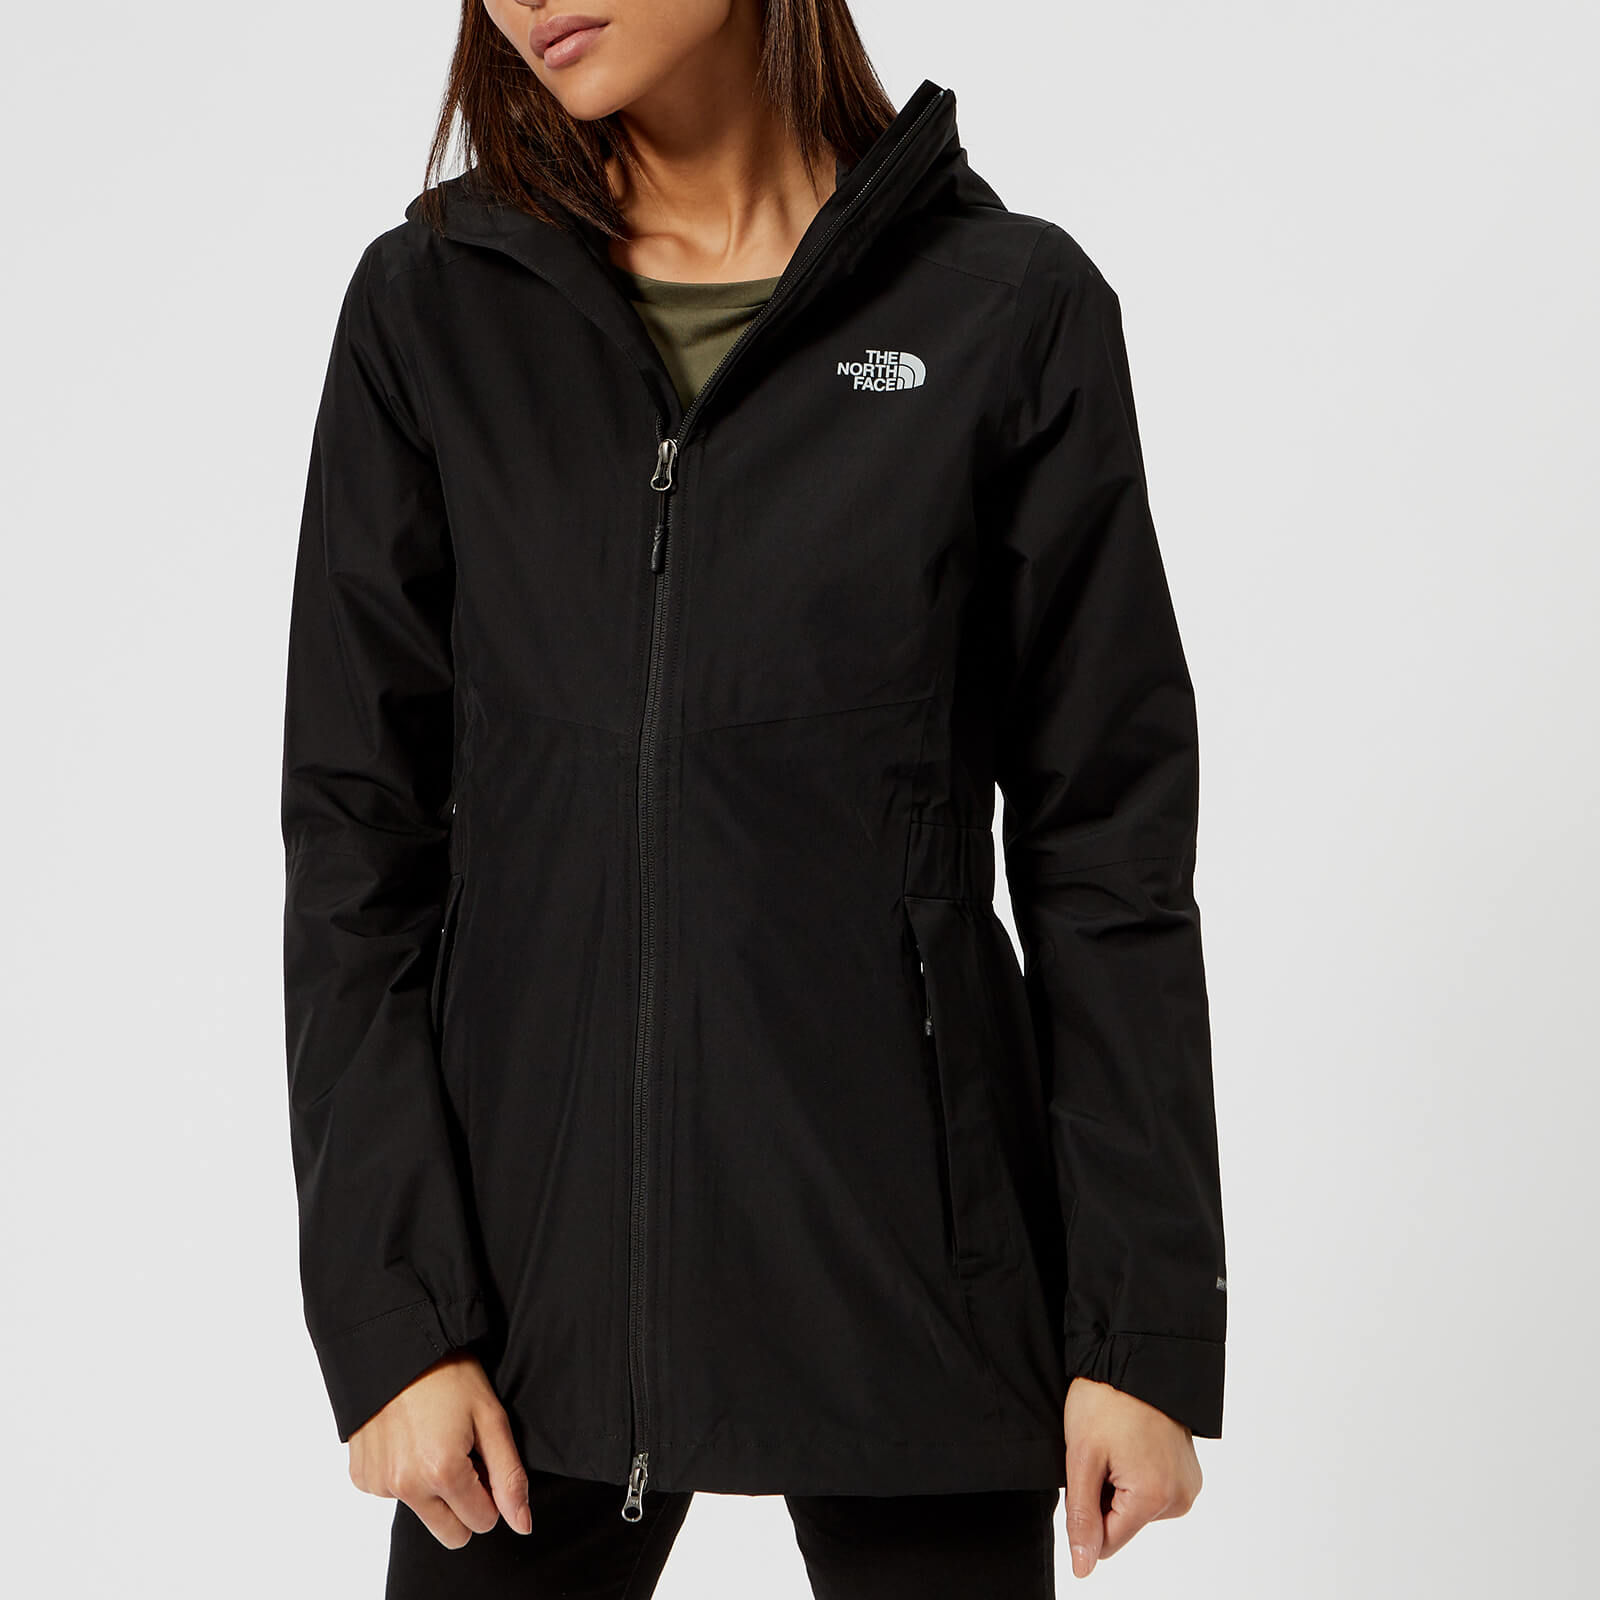 a0a4444db The North Face Women's Hikesteller Parka Shell Jacket - TNF Black